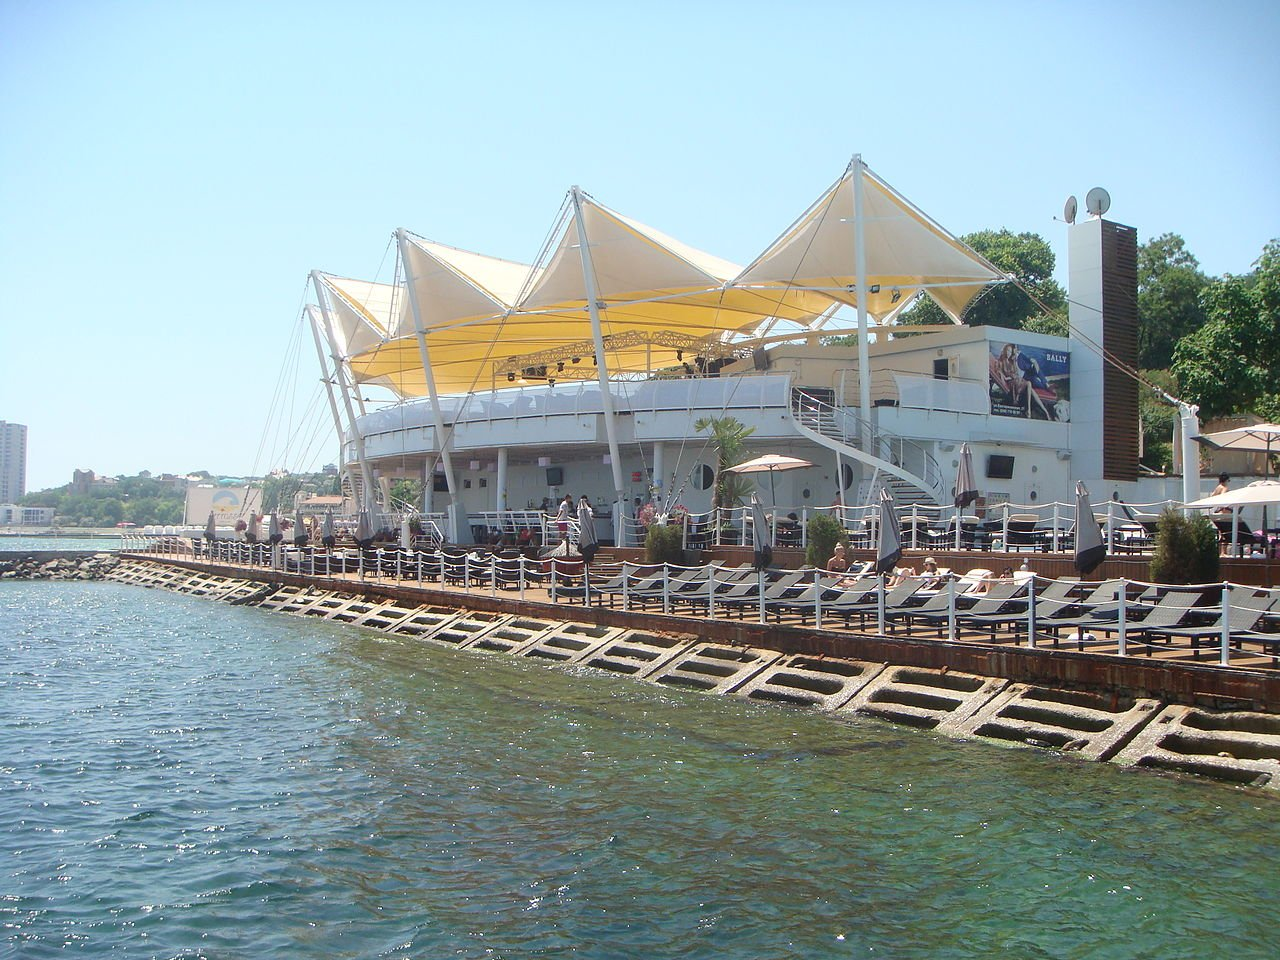 Plaza Beach Club, Odessa. Image: HOBOPOCC under a CC licence